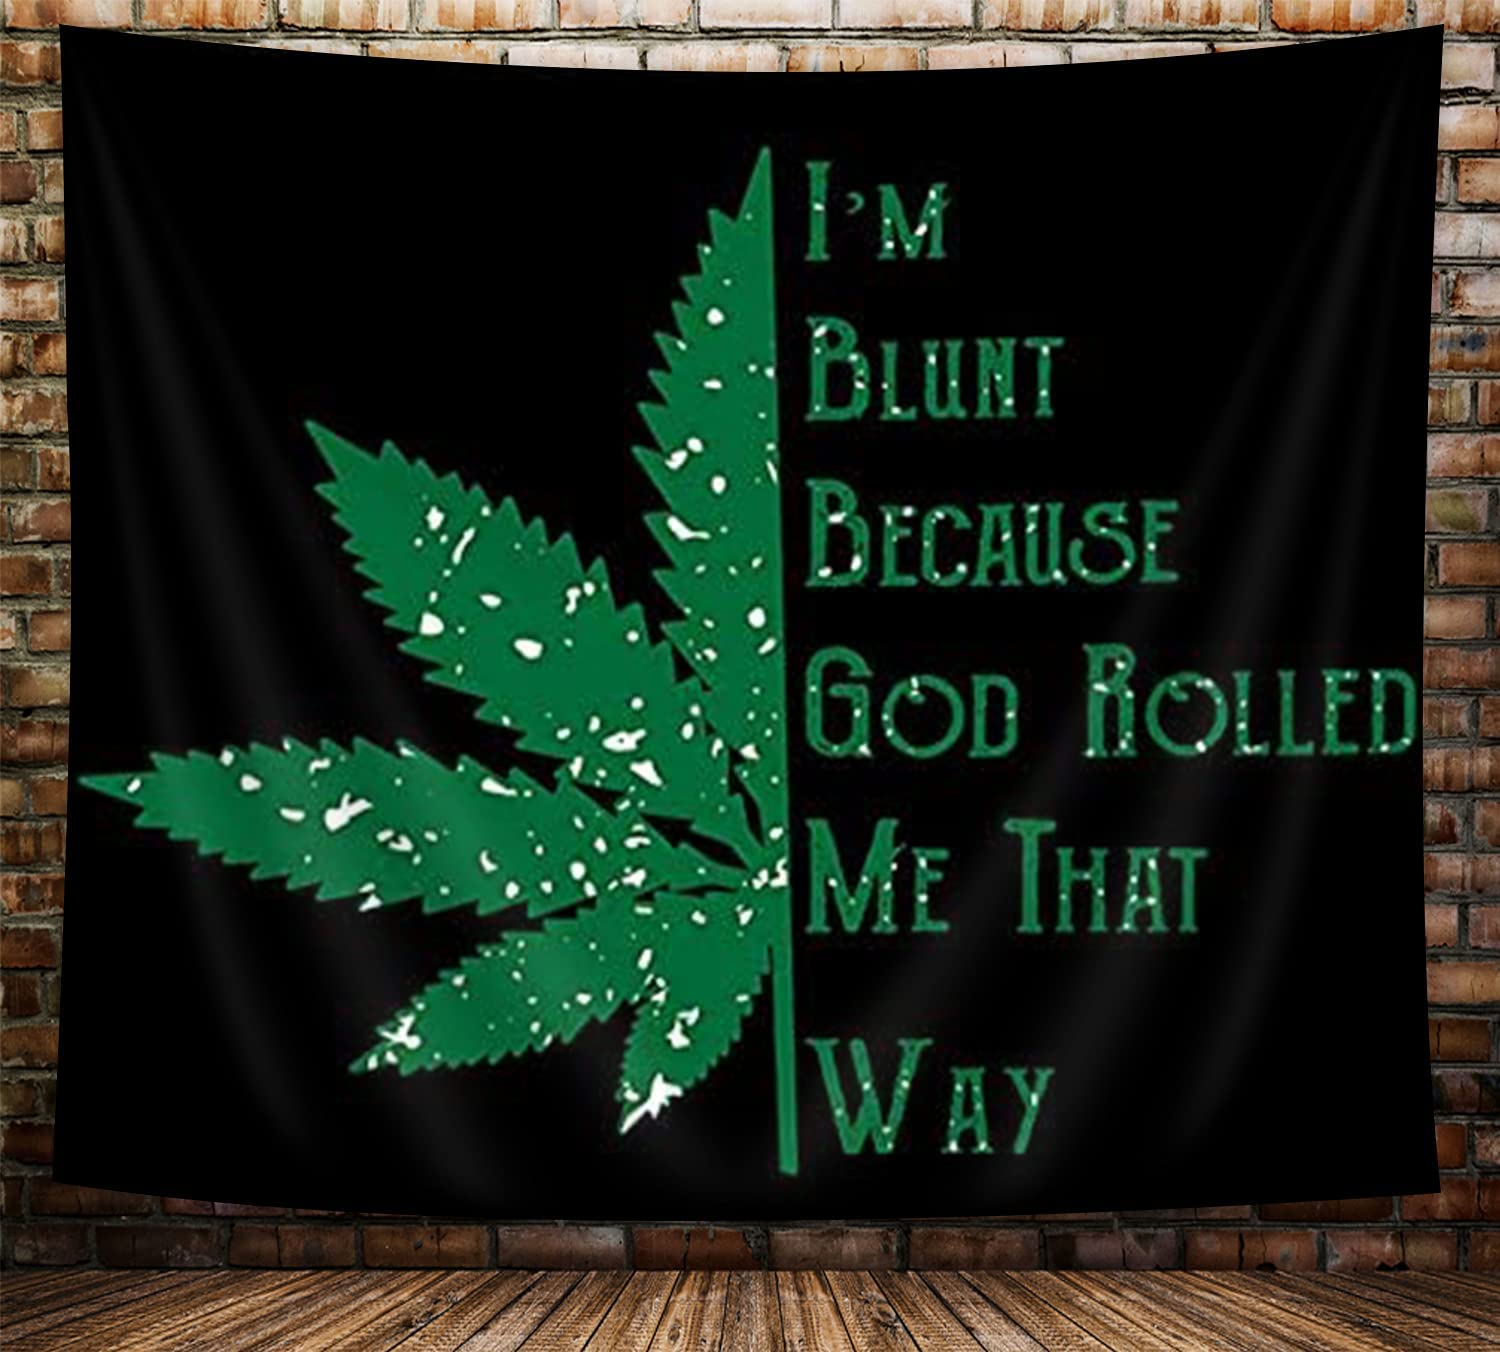 Cool Trippy Weed Tapestry for Men, Stoner Tapestry, Psychedelic Hippie  Cannabis Leaves Tapestry for Bedroom Aesthetic, Green Marijuana Leaf with  ...